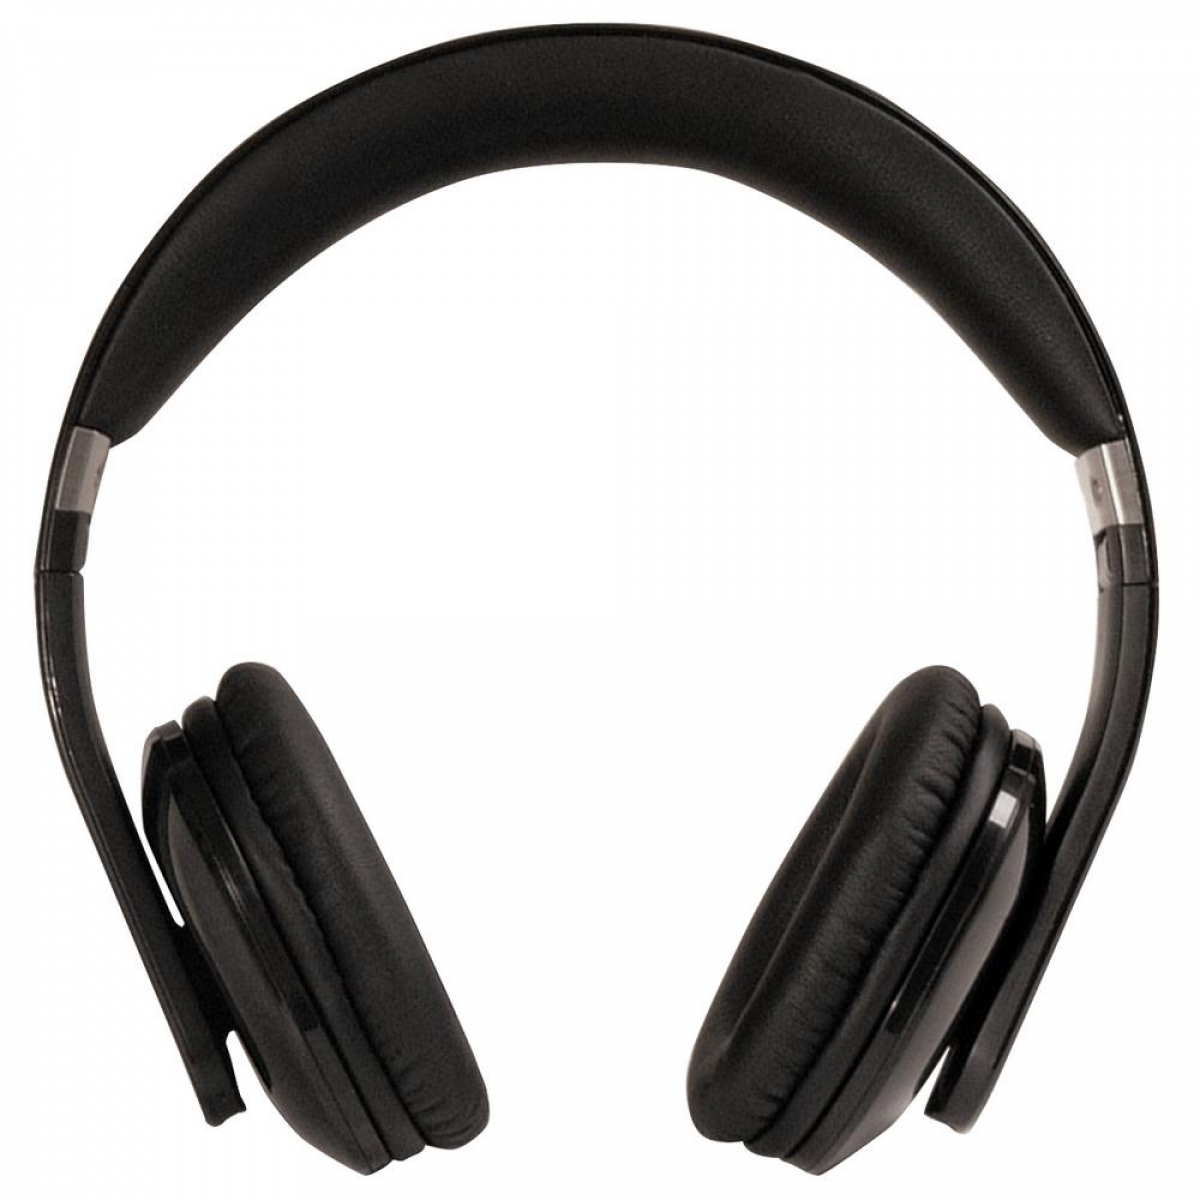 On Stage BH4500 Dual-Mode Bluetooth Stereo Headphones